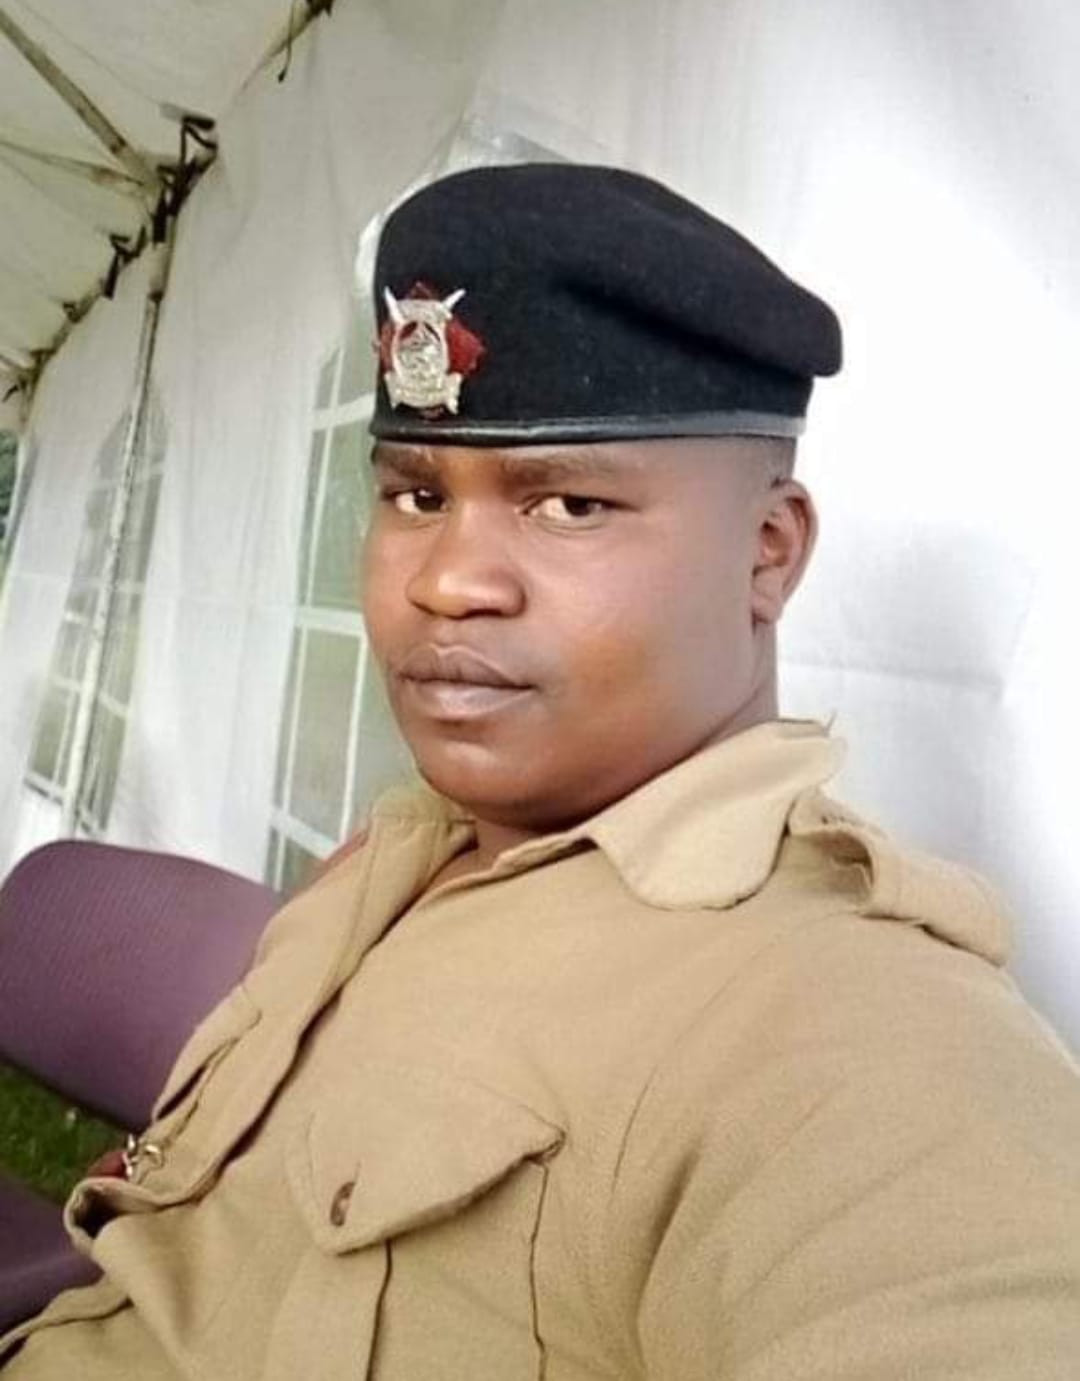 A Married Kenyan police officer assaults his mistress, follows her to hospital and shoots her dead before committing suicide